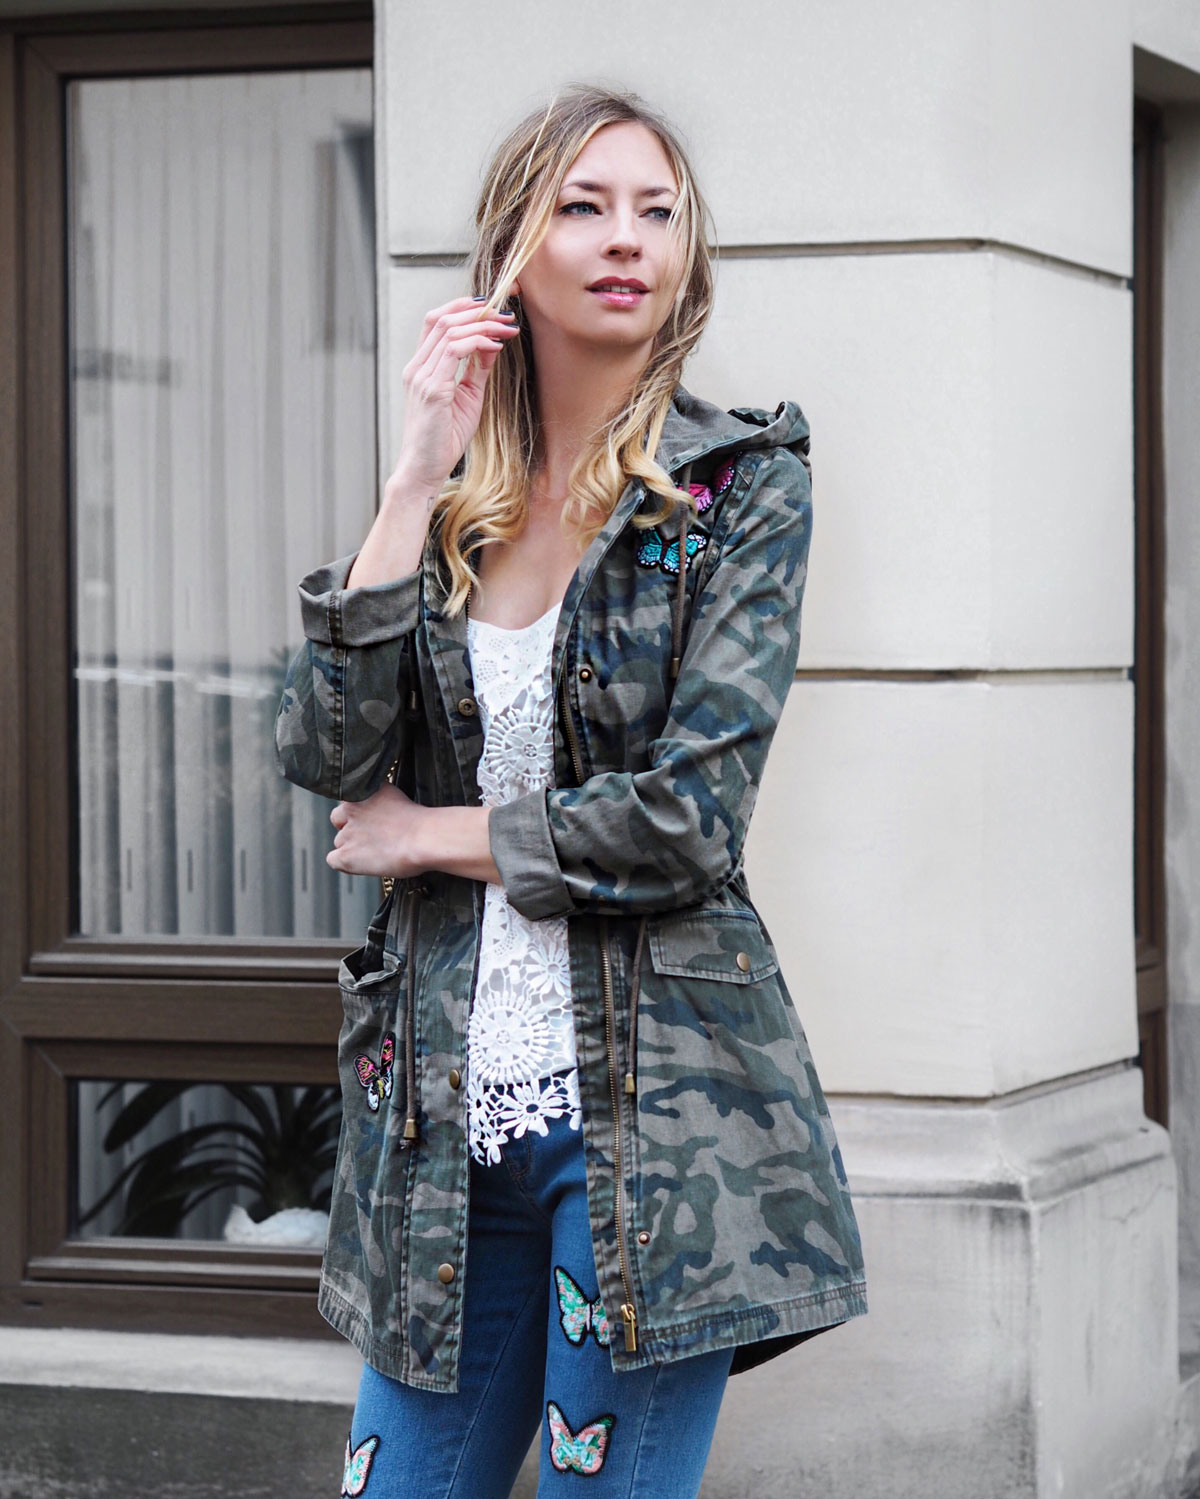 Army of Butterflies | Orsay | How I met my outfit by Dana Lohmüller